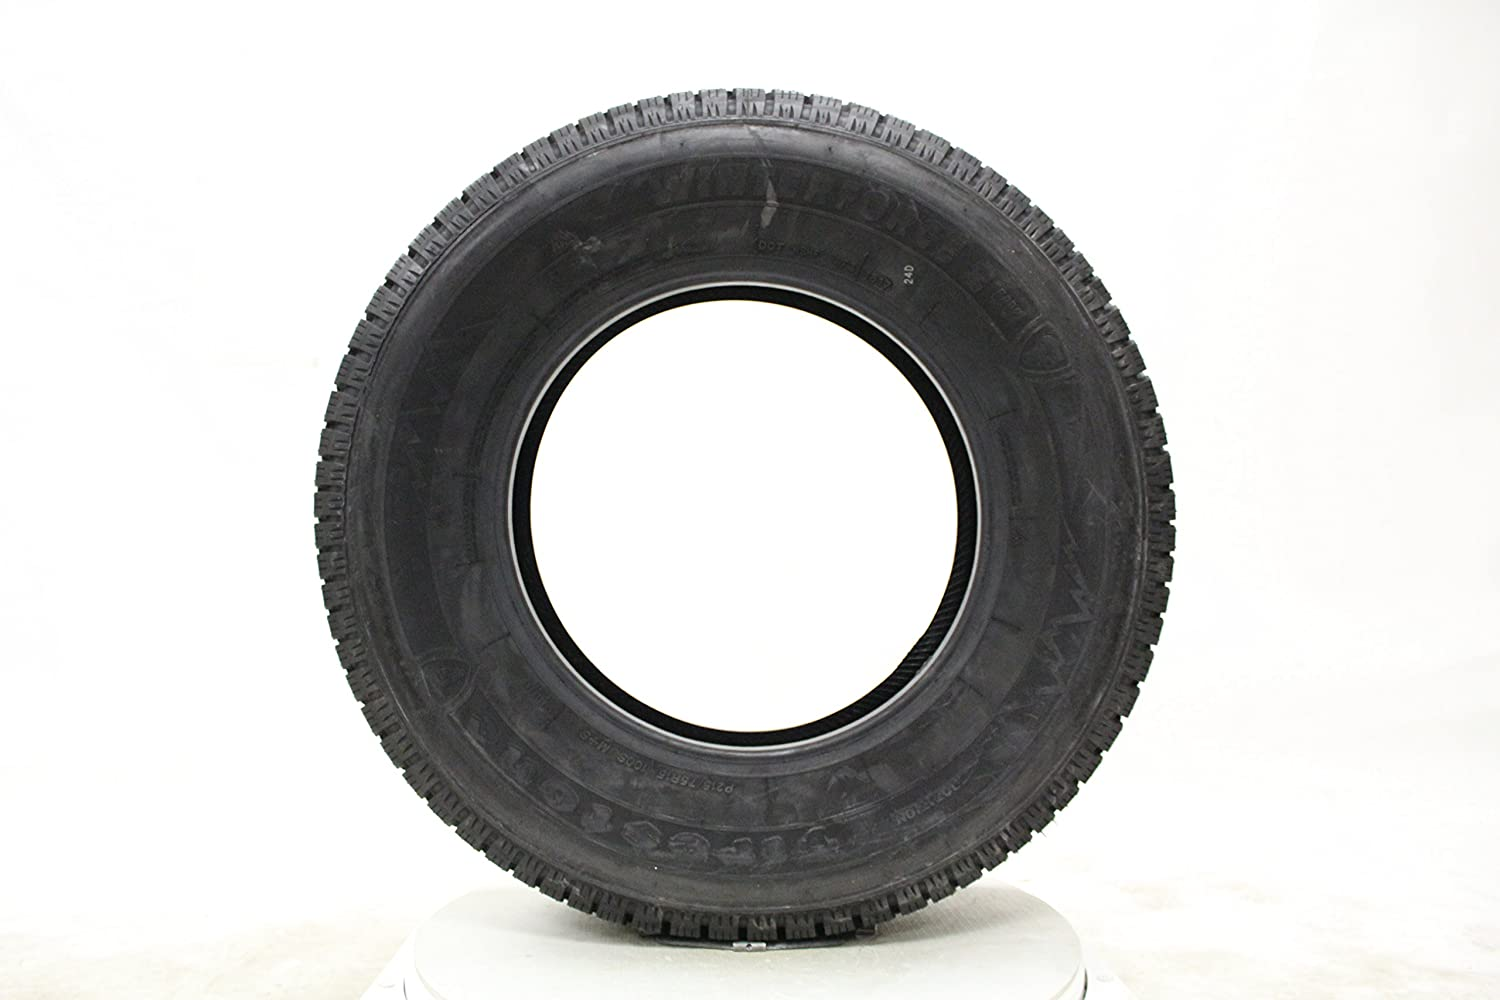 Firestone Winterforce 2 UV Studable-Winter Radial Tire 235//65R17 104S